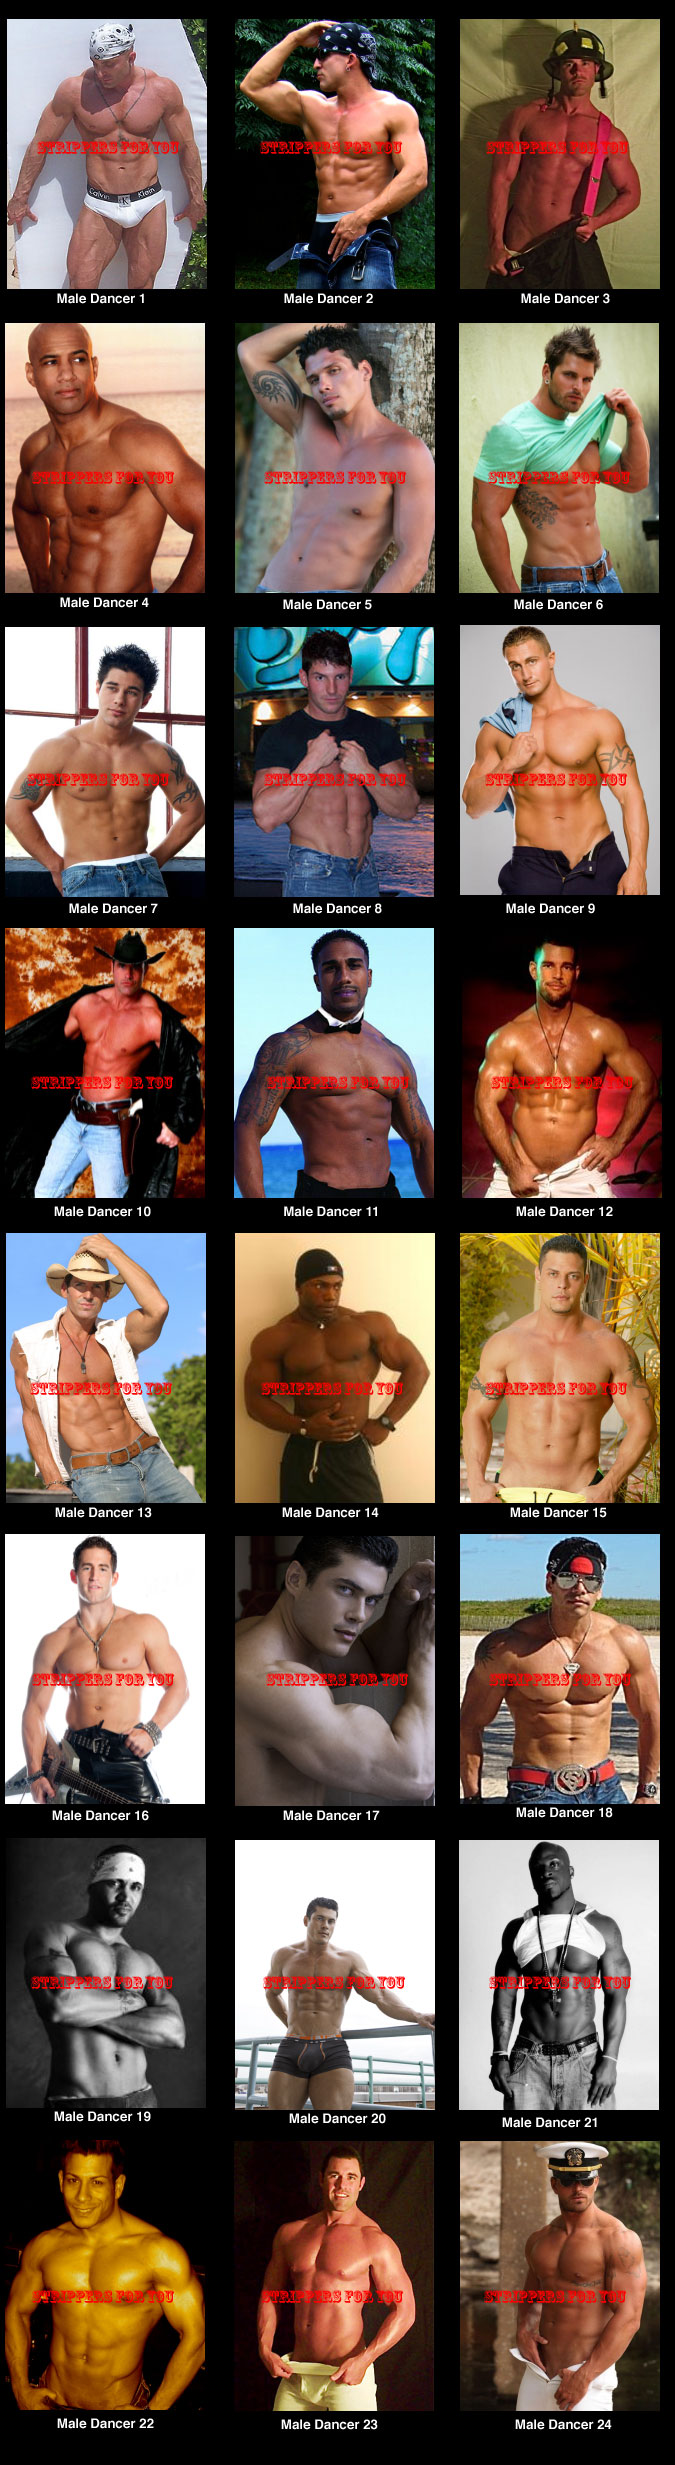 Houston male strippers